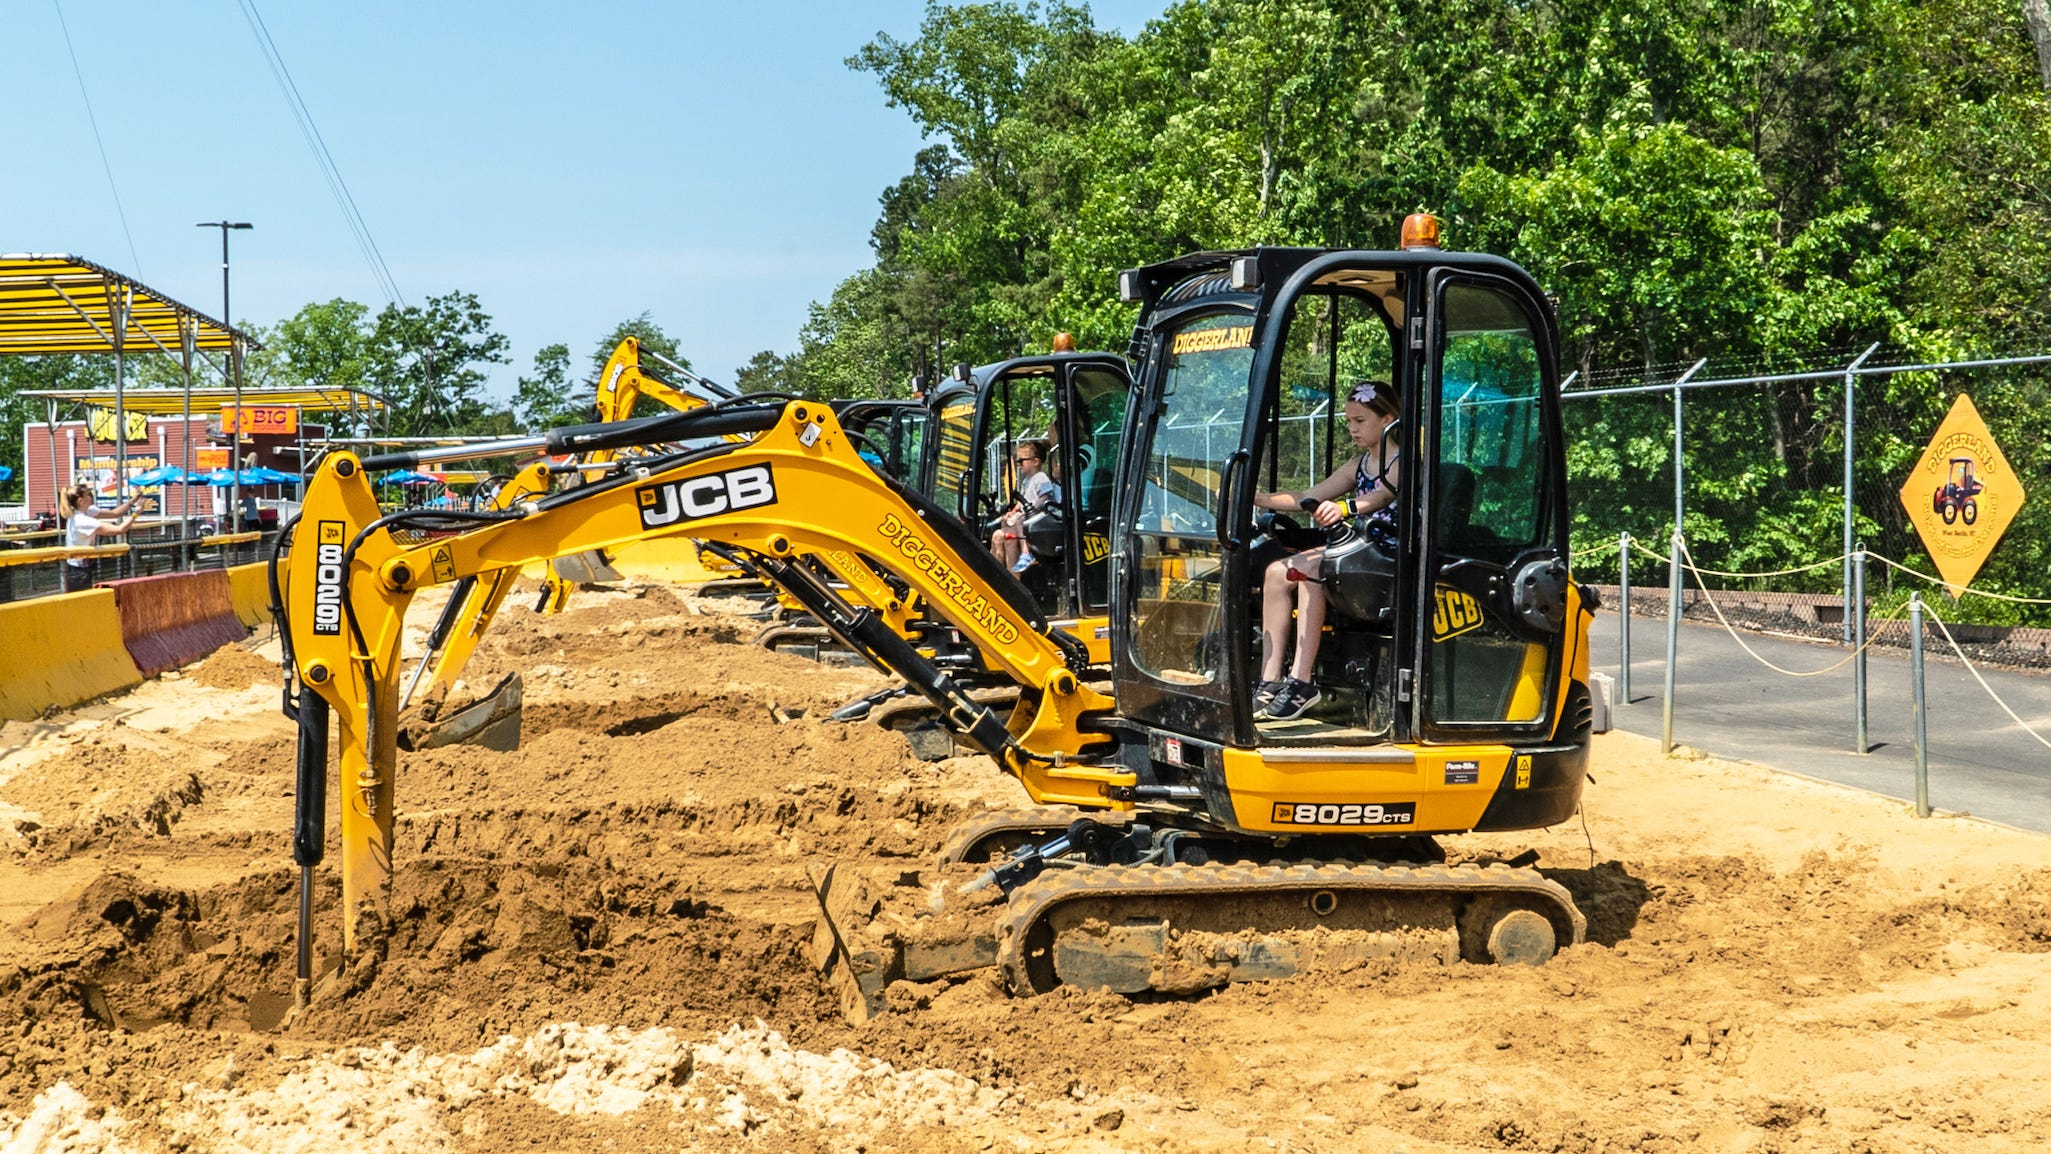 Kids can learn to operate a real machinery and dig until their hearts are content on the Big Diggers. This supervised attraction offers family-friendly machinery and the chance to really get down and experience real machines!